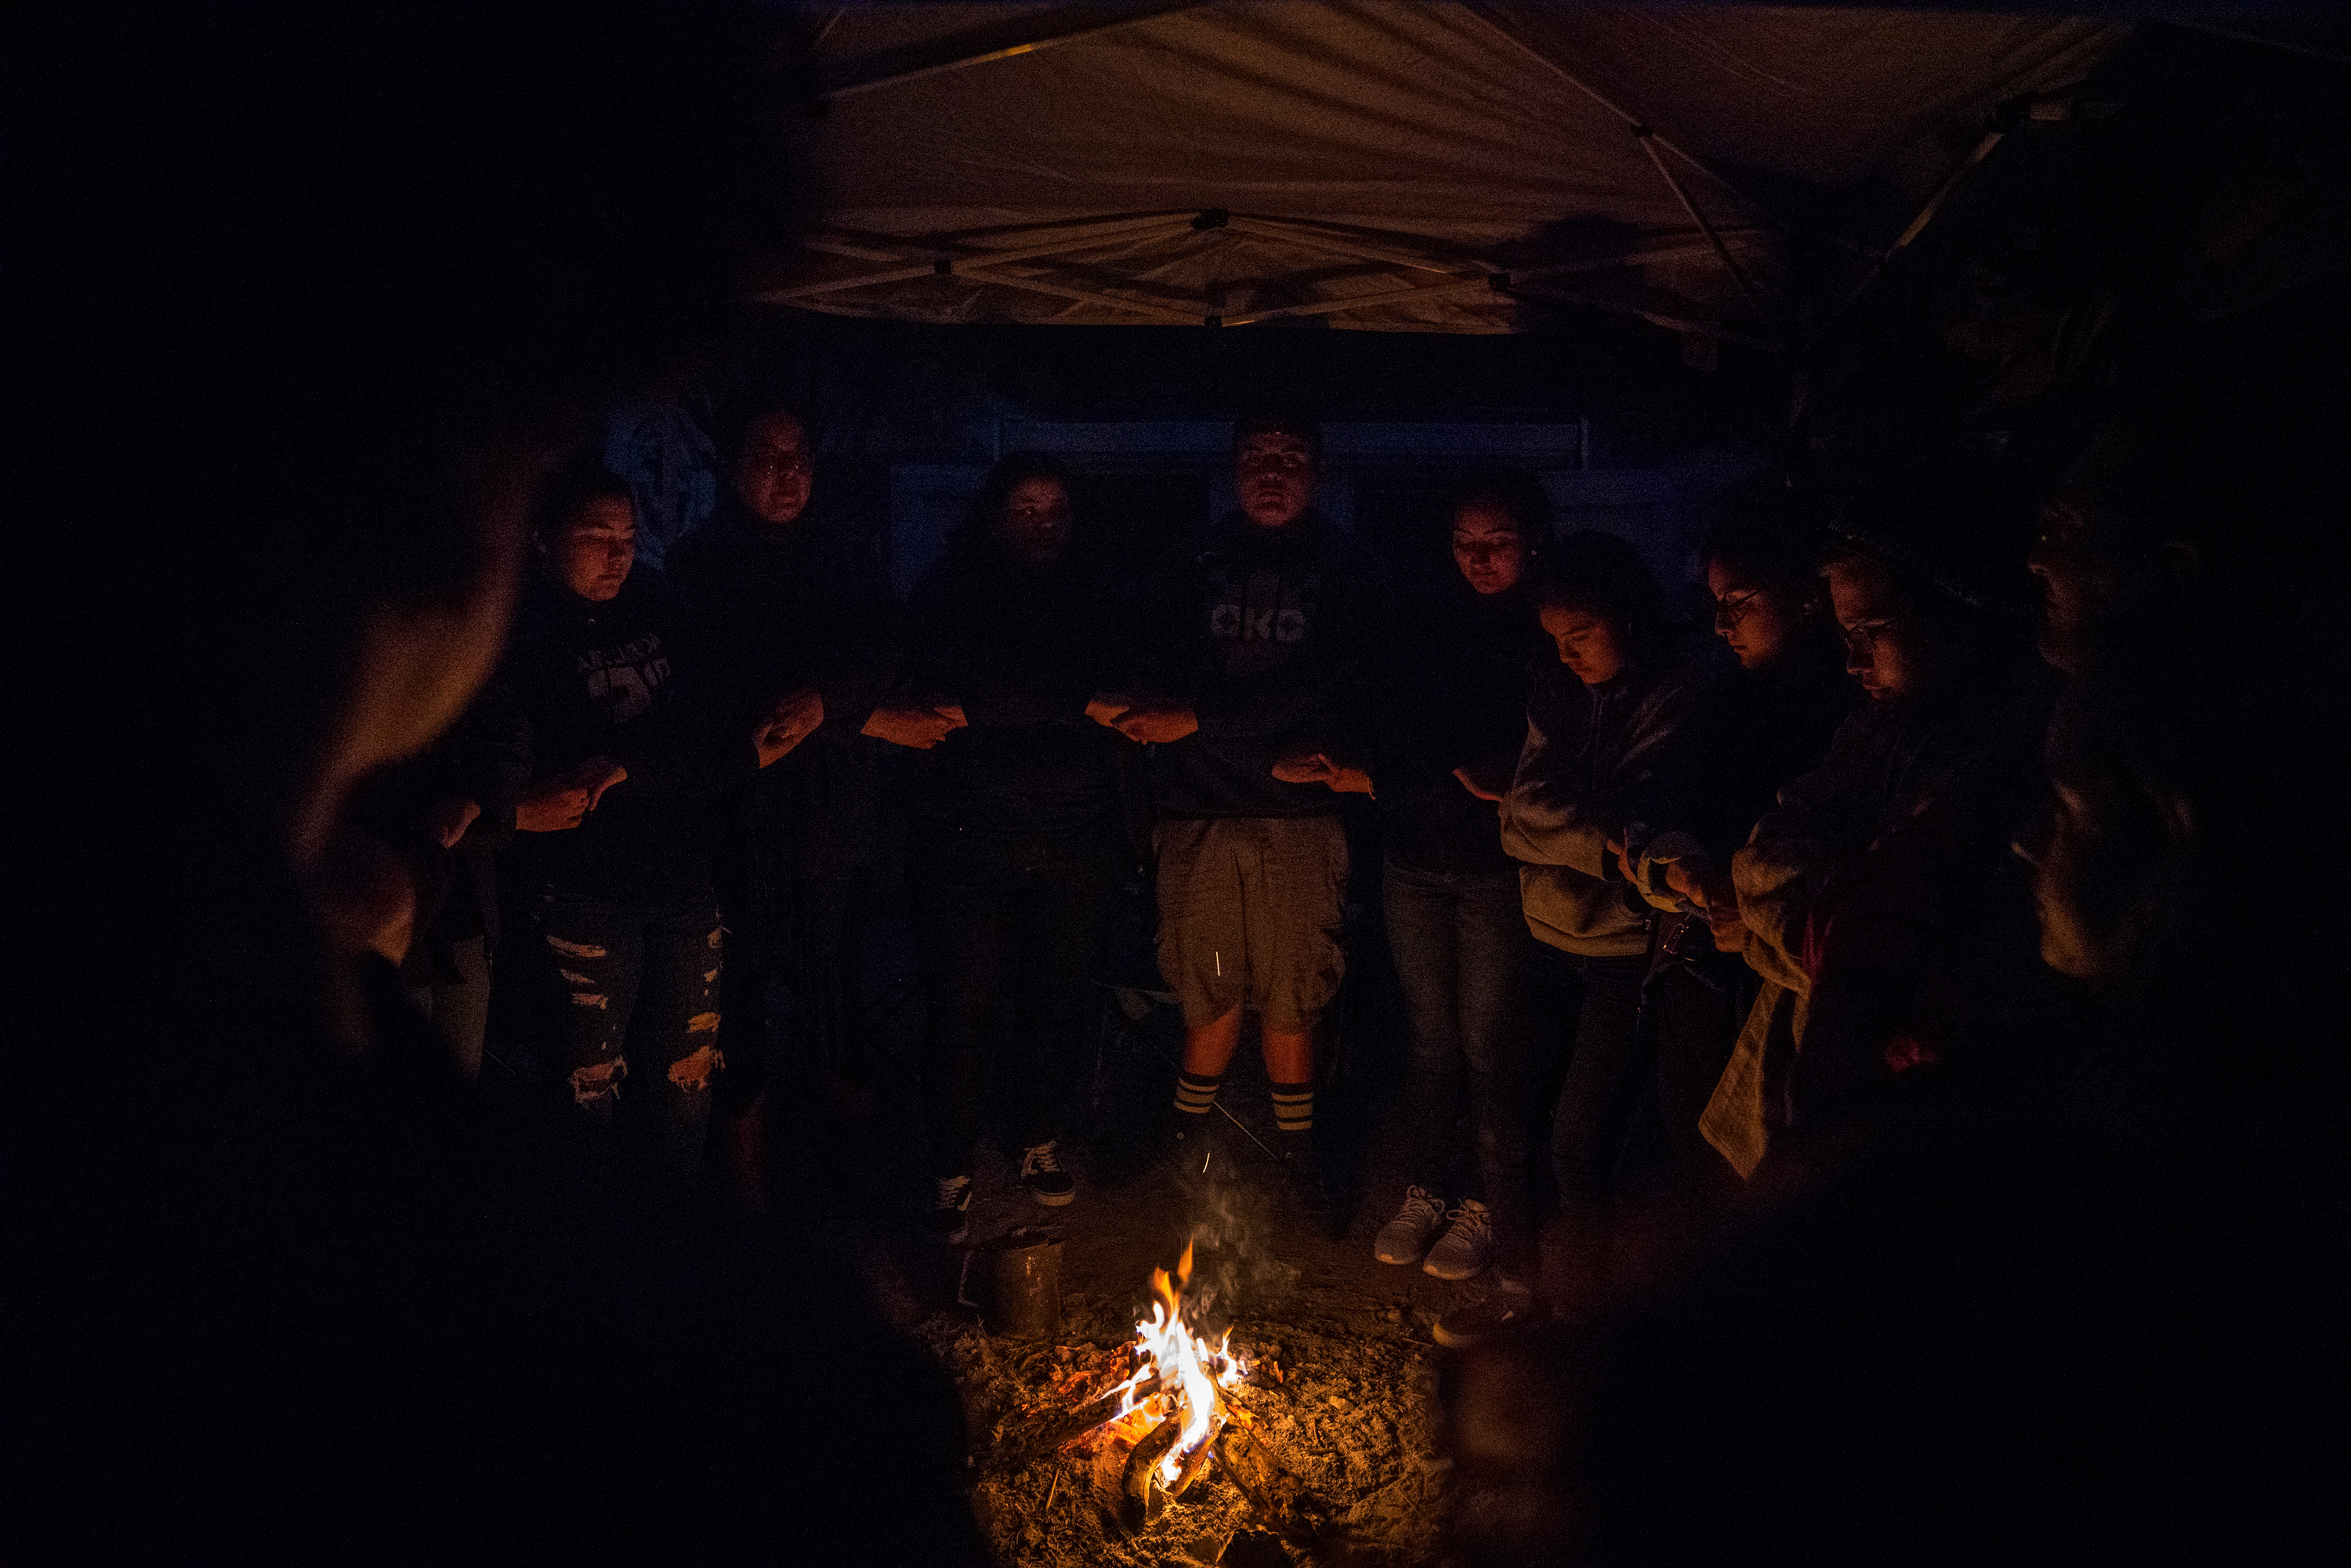 """""""Al Exito"""" members along with Carrizo/Comecrudo Tribe members, and activists gather around the fire to share things that they are thankful for at Yalui Village in Hidalgo County, Texas on March 17, 2019.Photo: Verónica G. Cárdenas for The Intercept"""